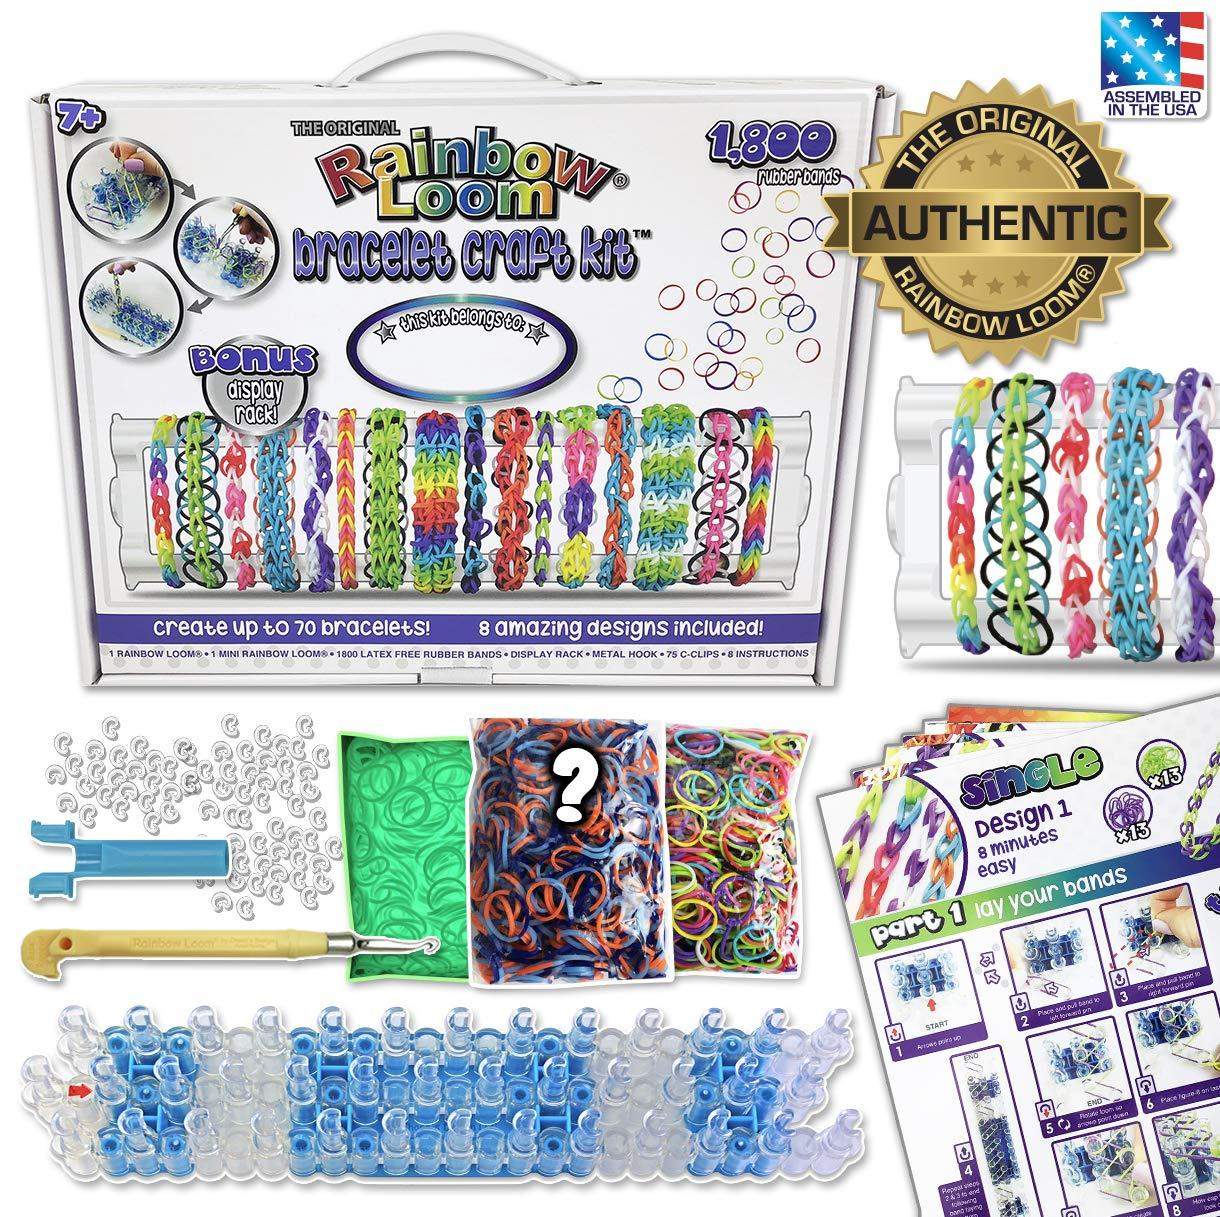 Rainbow Loom Bracelet Craft Kit by Rainbow Loom